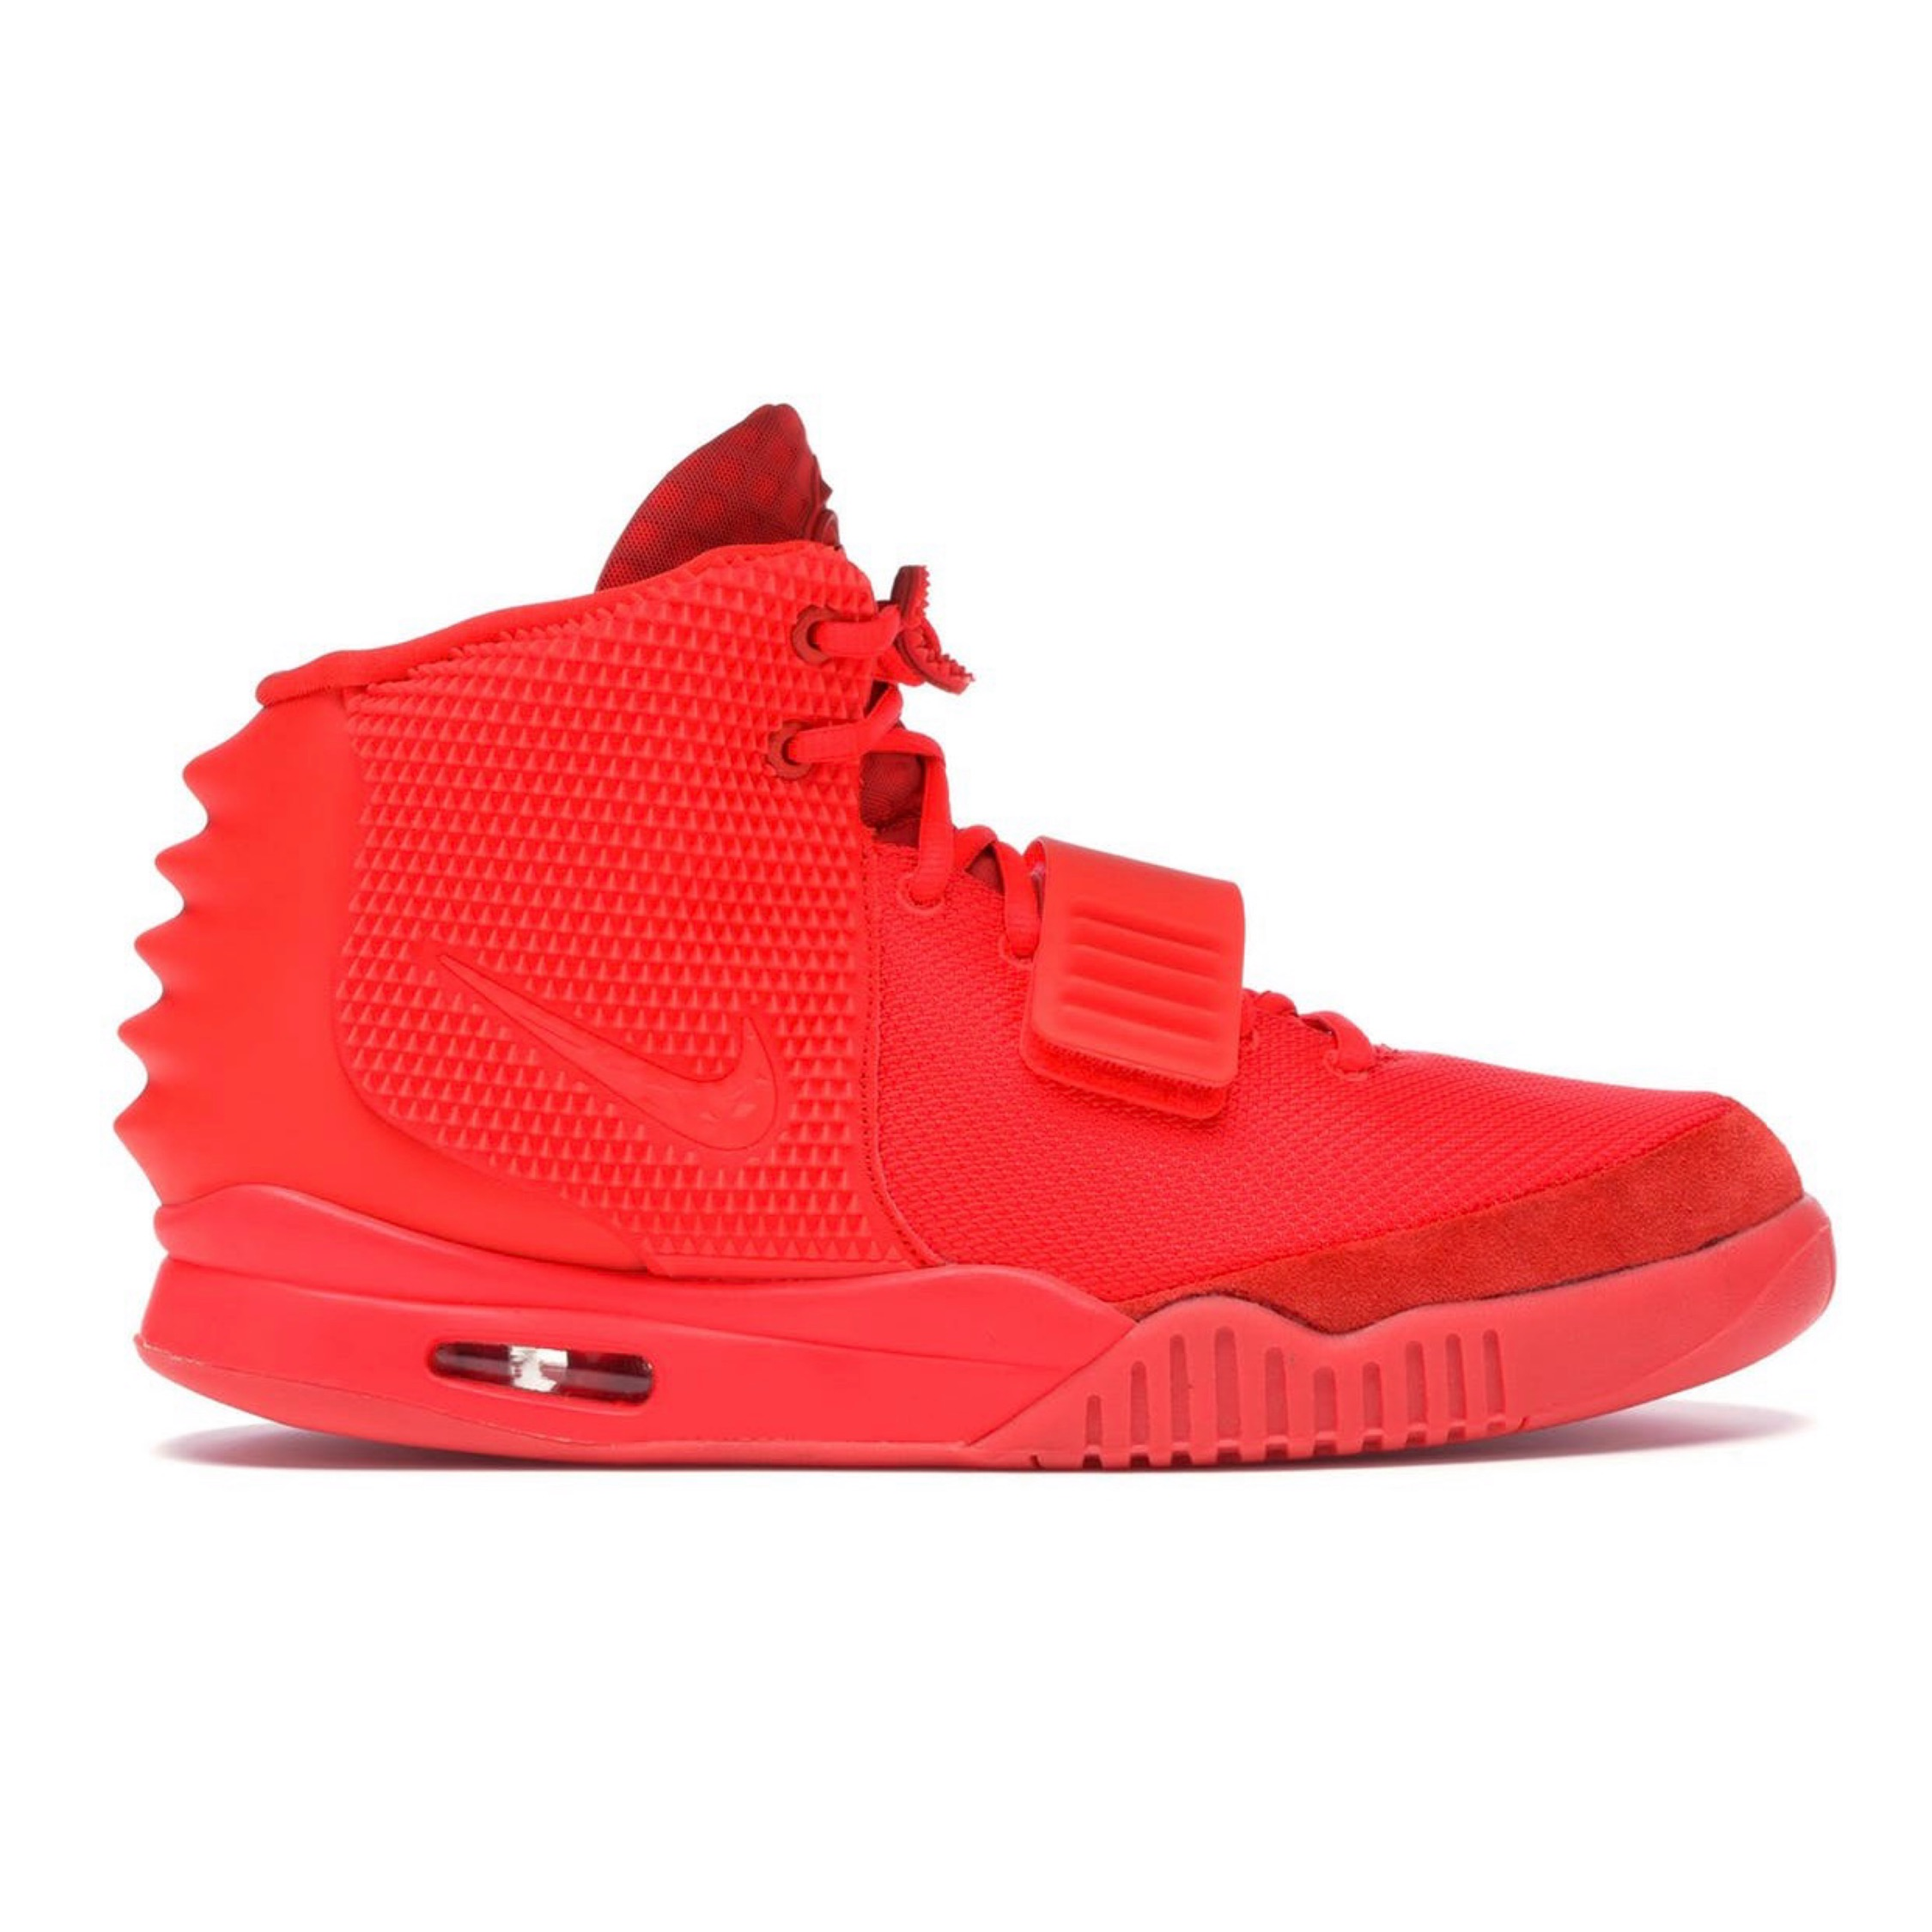 1191a88b84af7 Nike Yeezy 2 Red October Sp Authentic